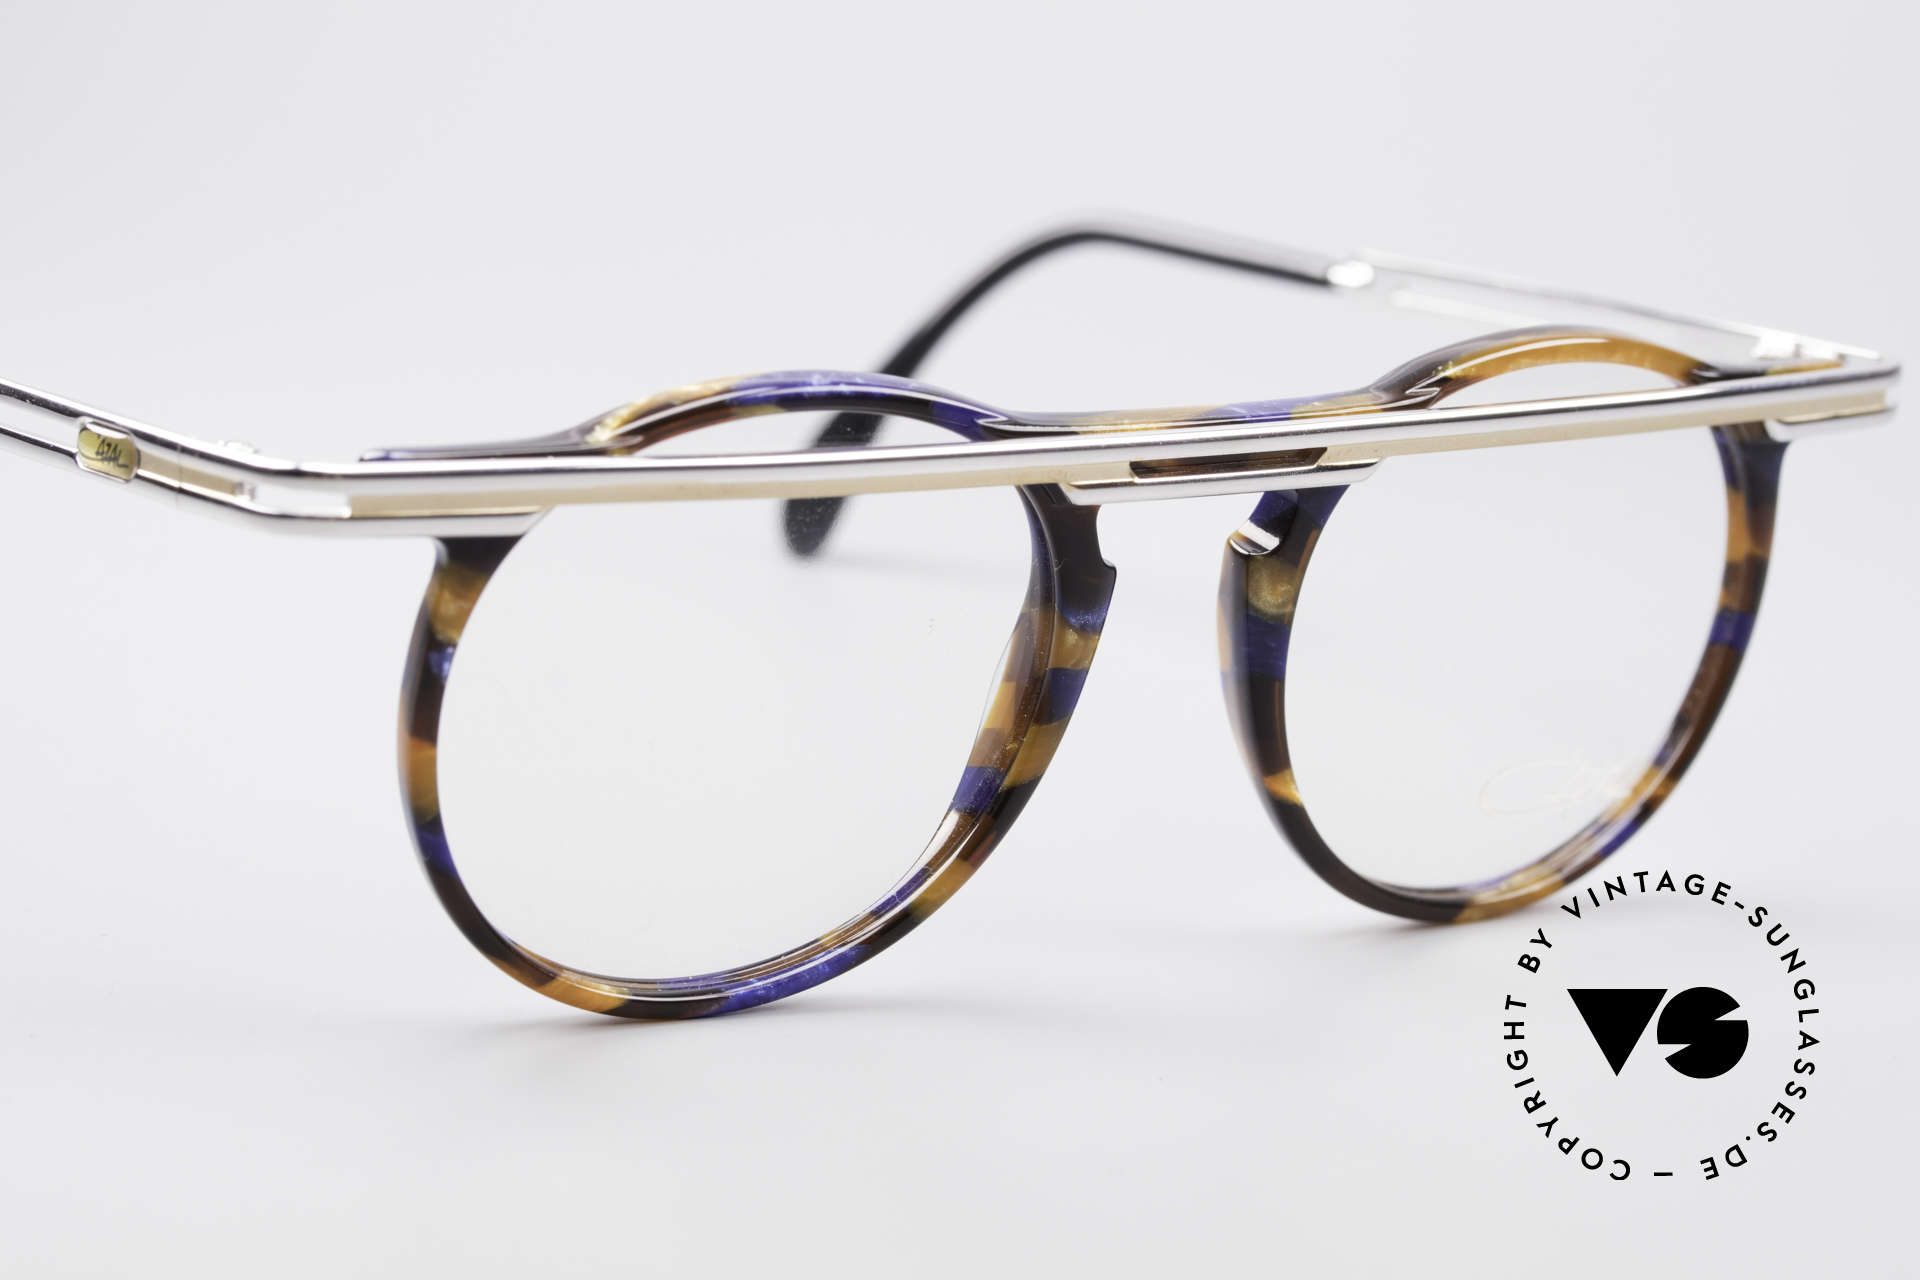 Cazal 648 Cari Zalloni 90's Eyeglasses, unworn, NOS (like all our rare vintage Cazal glasses), Made for Men and Women